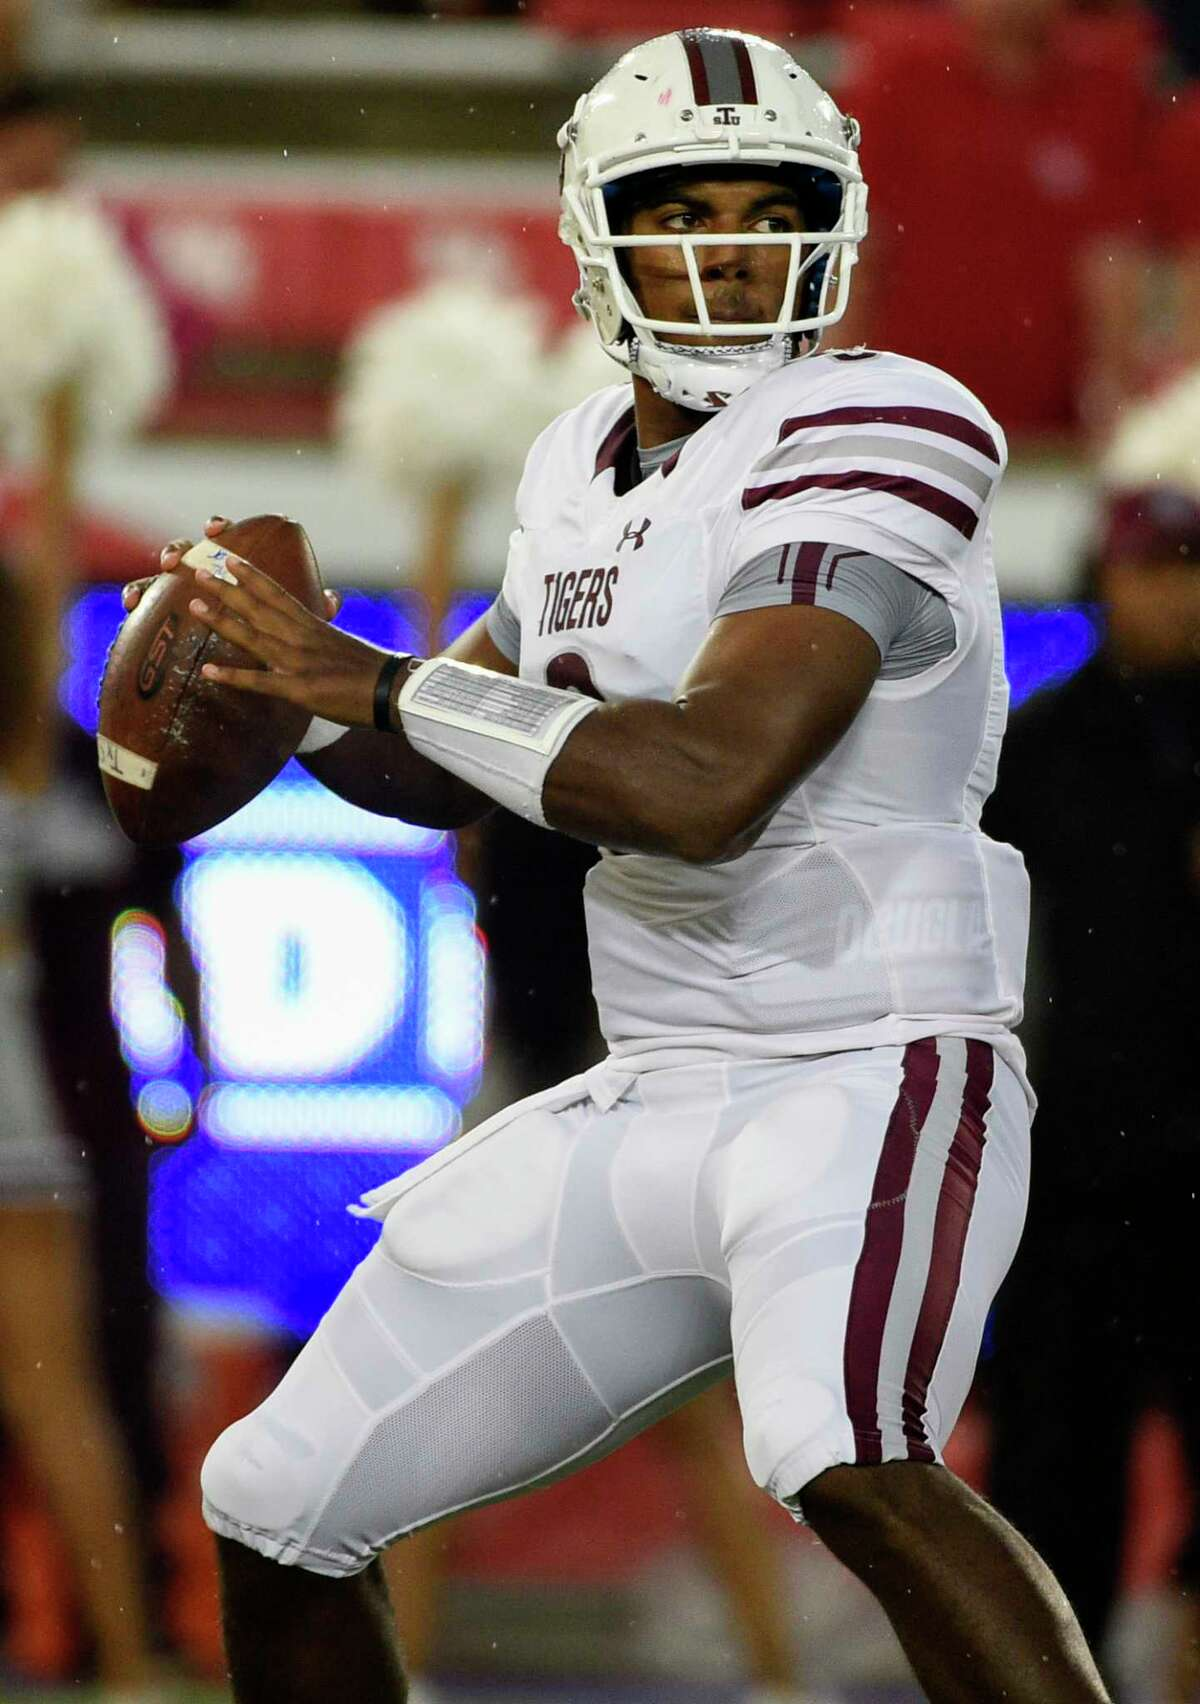 Texas Southern quarterback Glen Cuiellette drops back to pass during the first half of an NCAA college football game against Houston, Saturday, Sept. 22, 2018, in Houston.